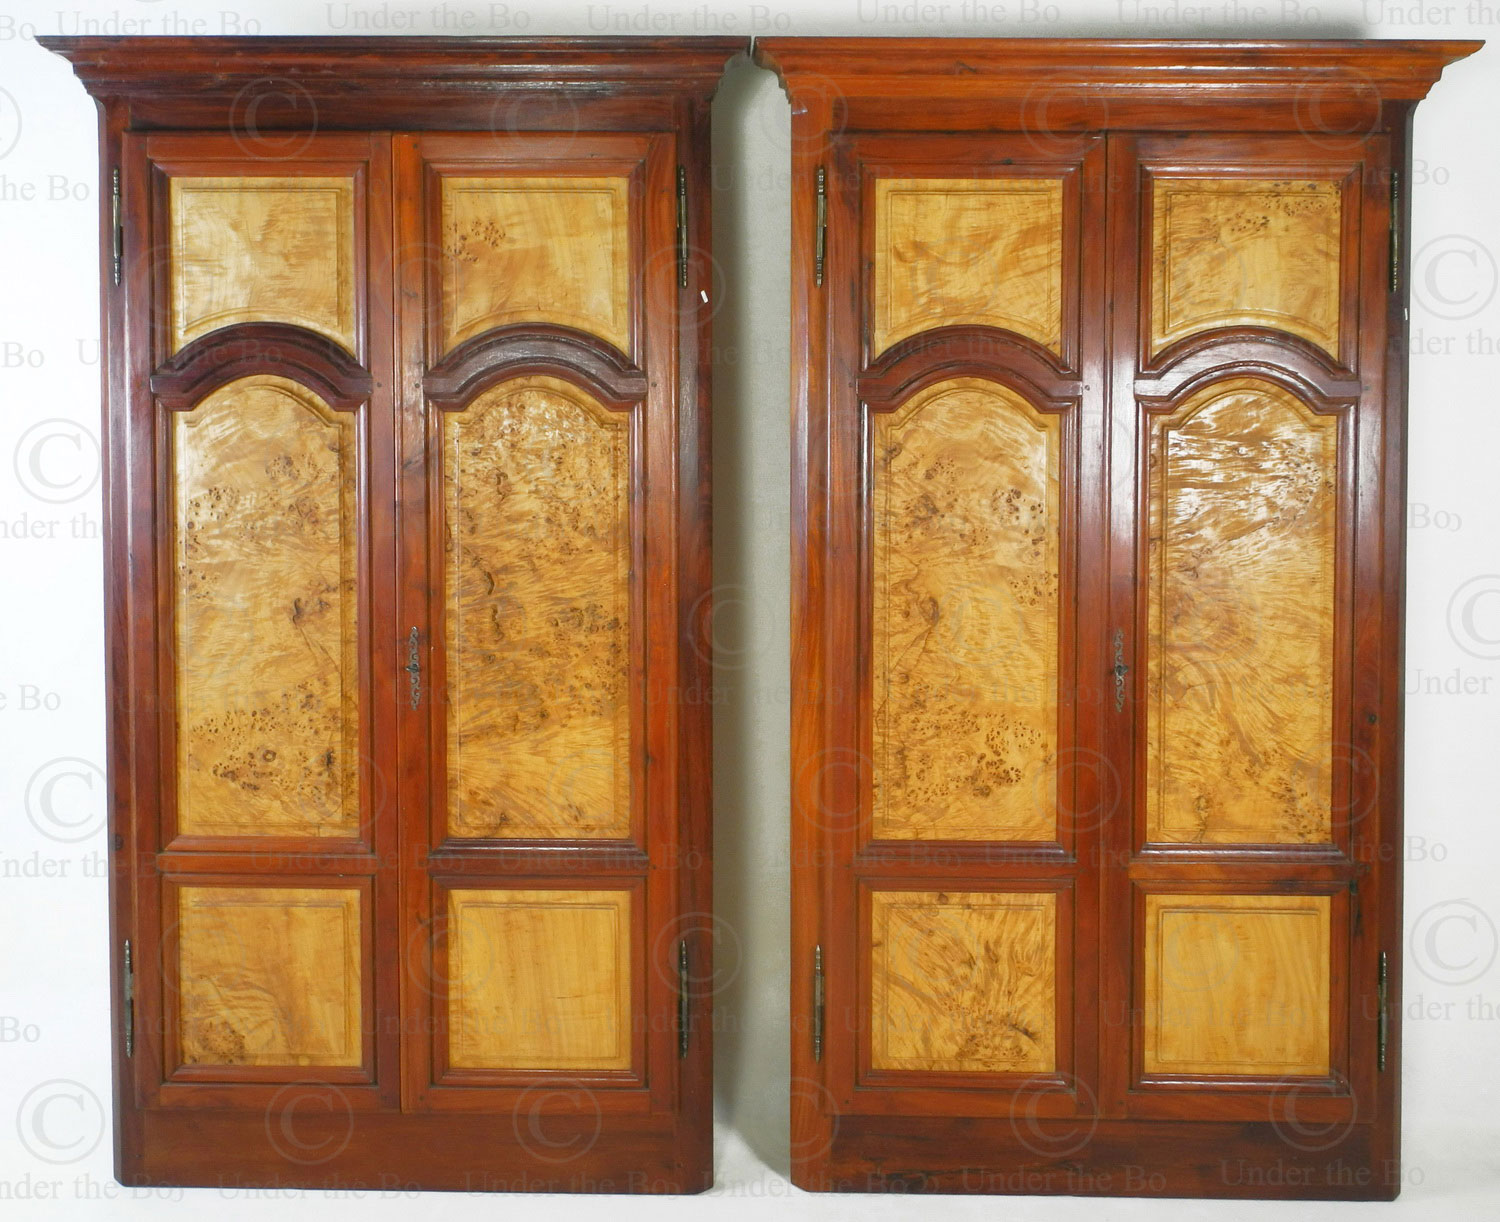 Cupboard fronts FV152. France's Louis-Philippe style, mid-19th century. Made at Under the Bo workshop.